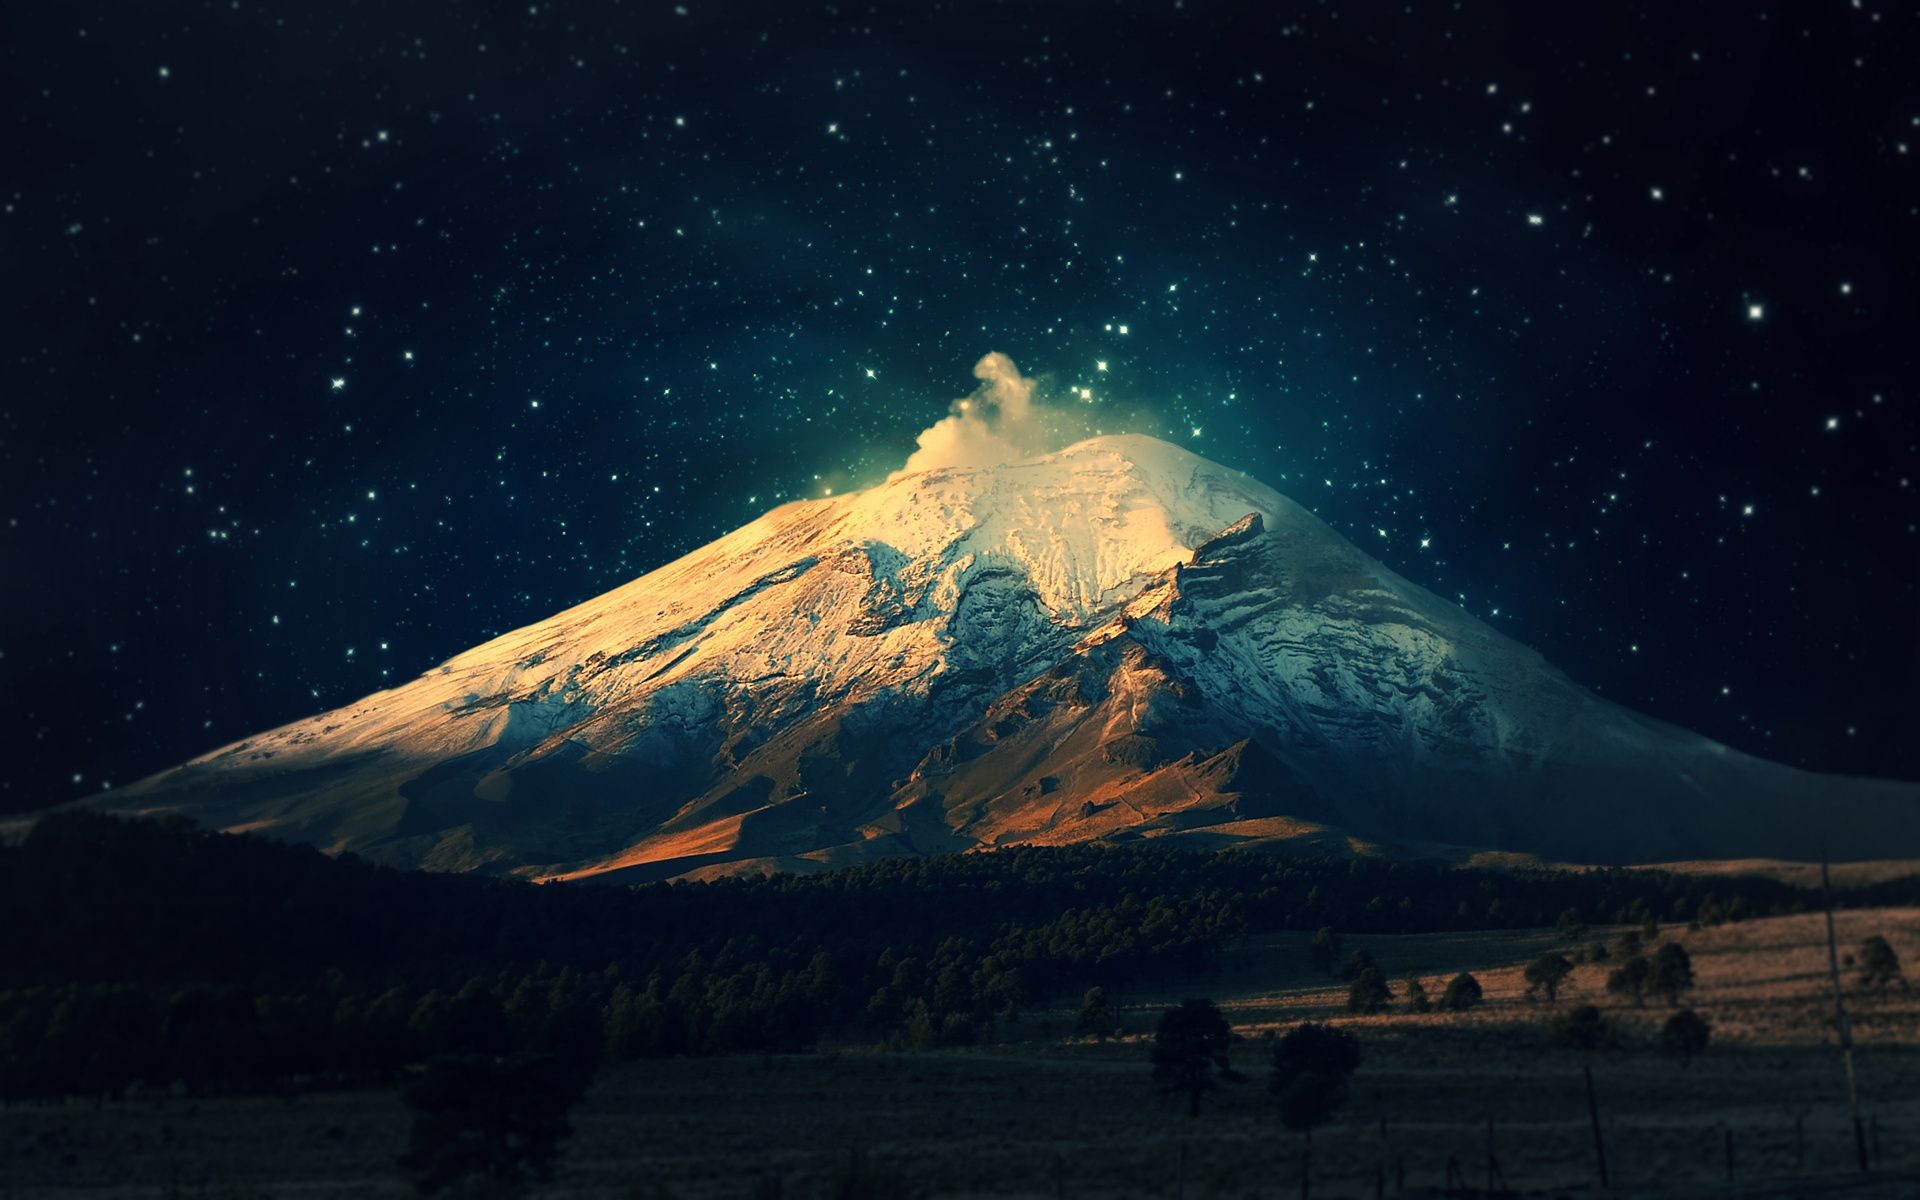 night mountain desktop wallpapers for desktop wallpaper 1920x1200